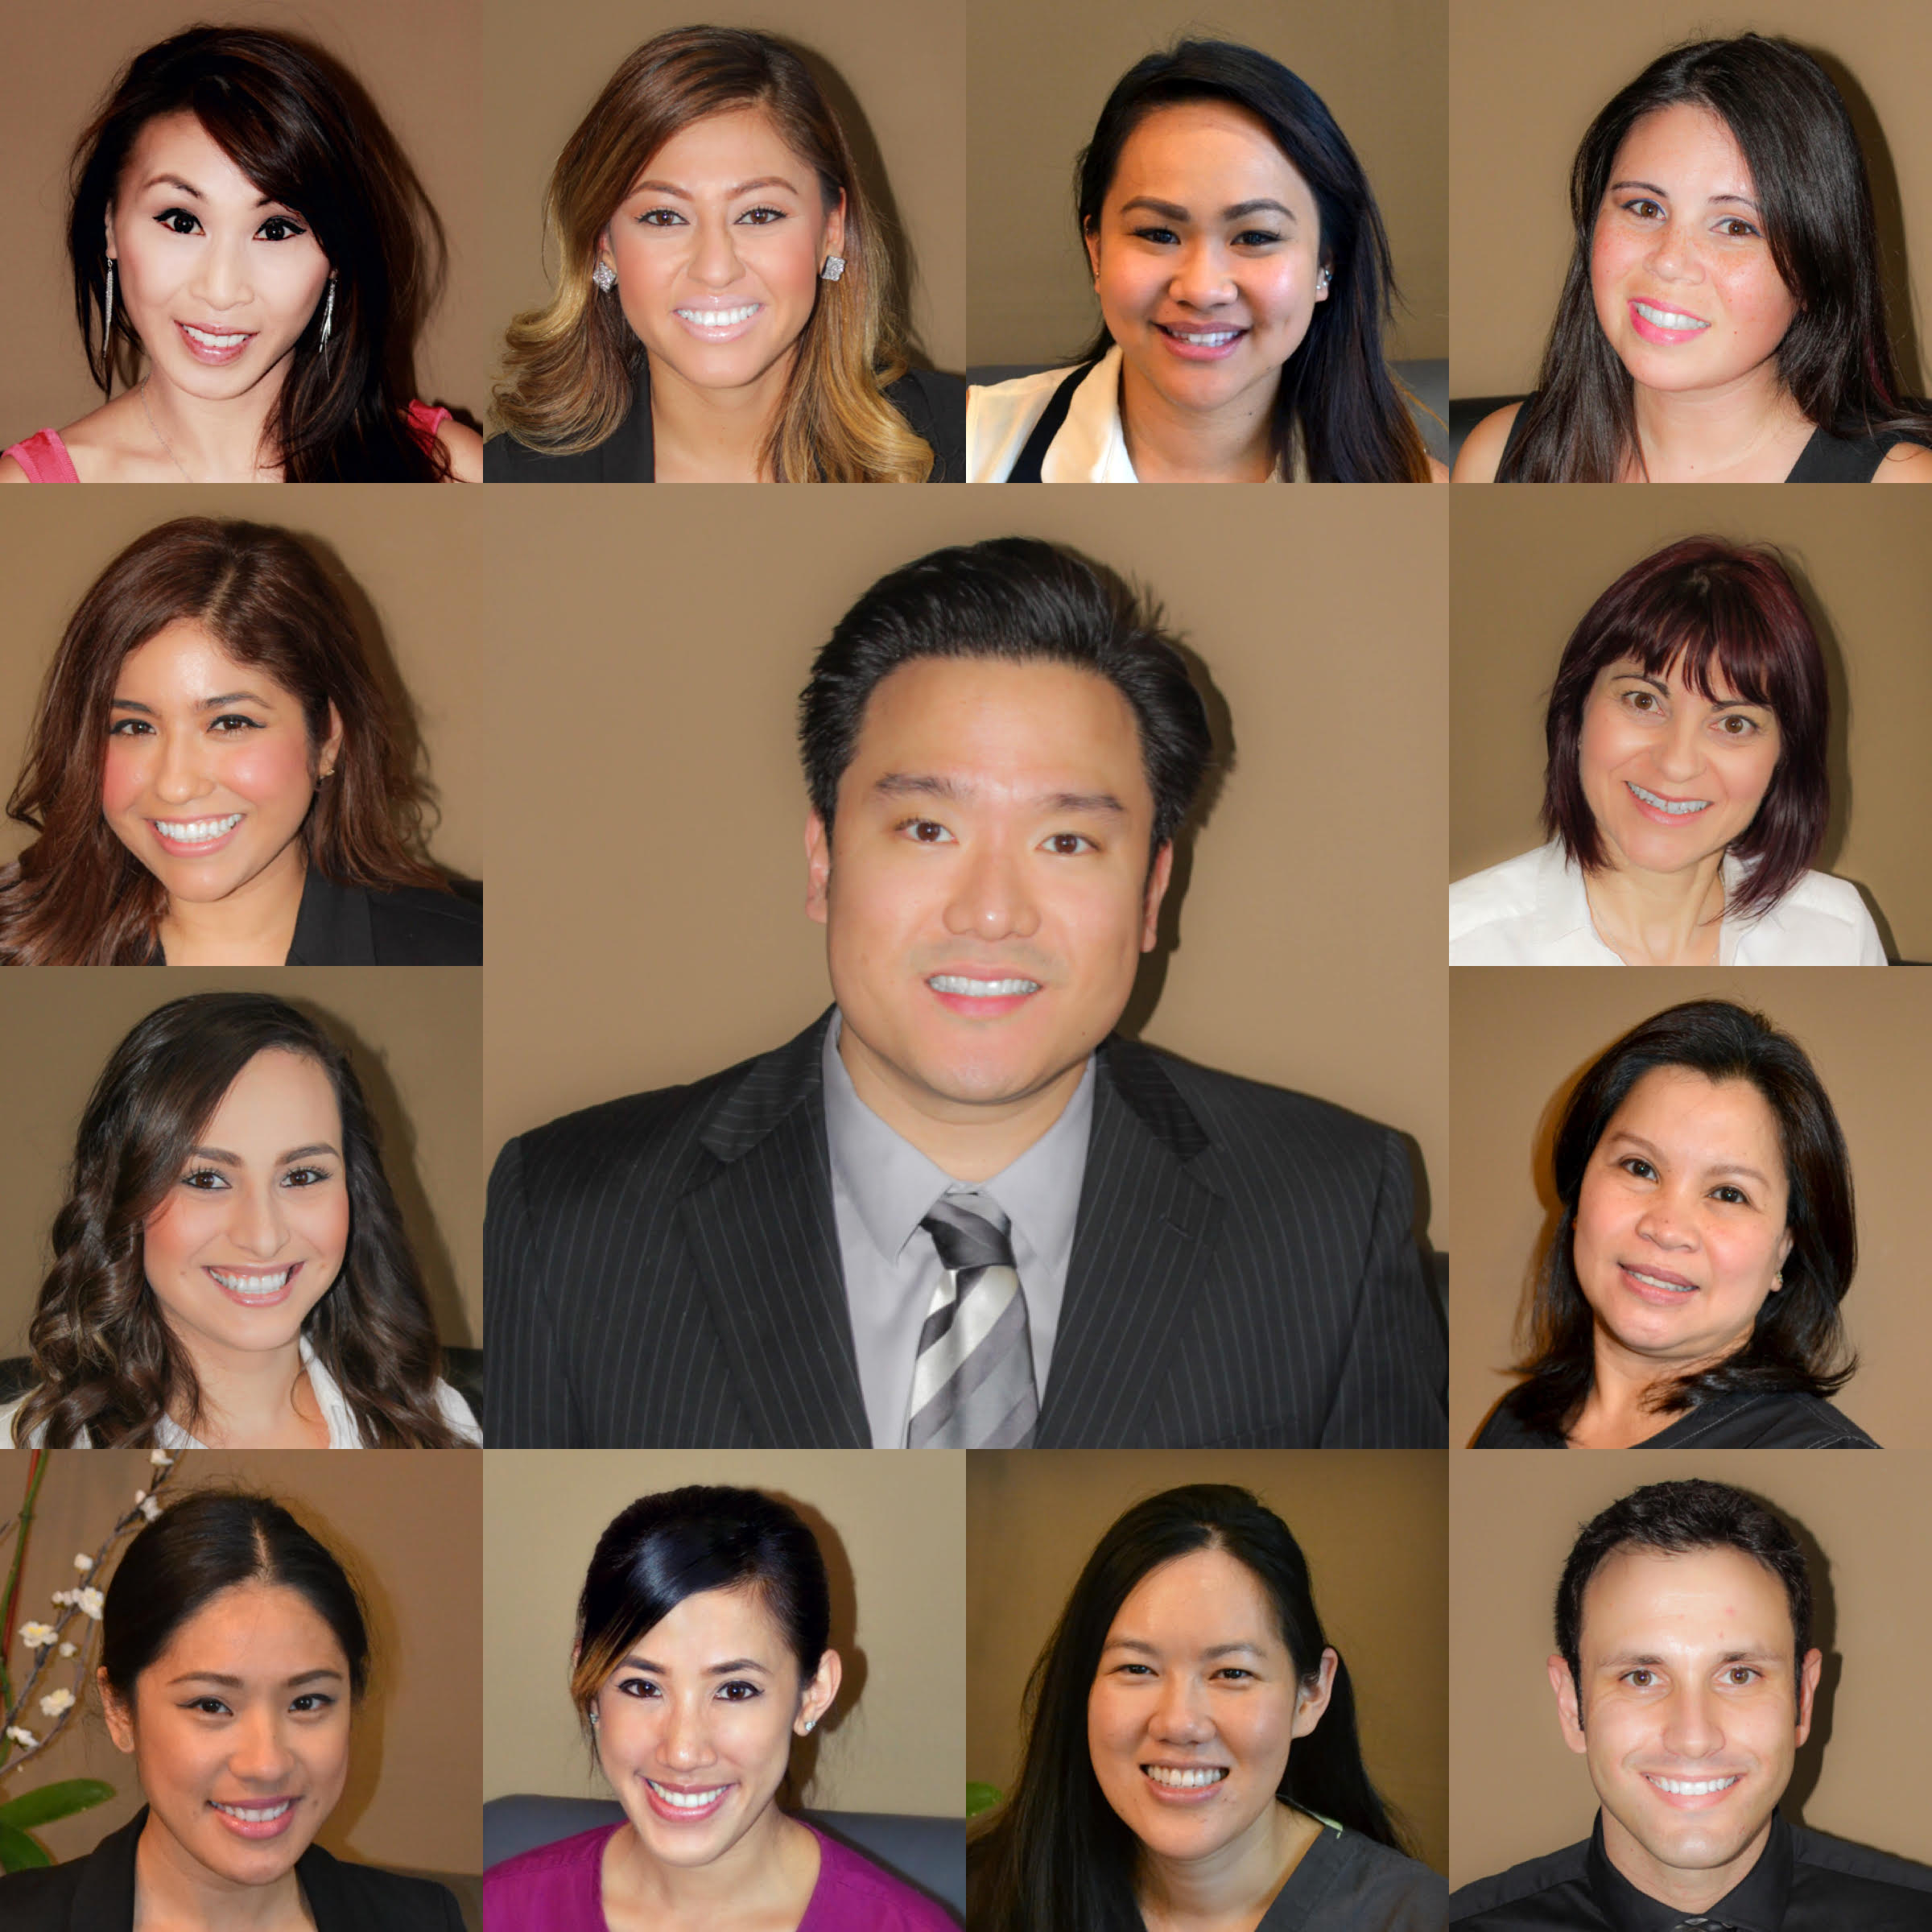 Dr. David Meng, D.D.S. and Associates, DDS